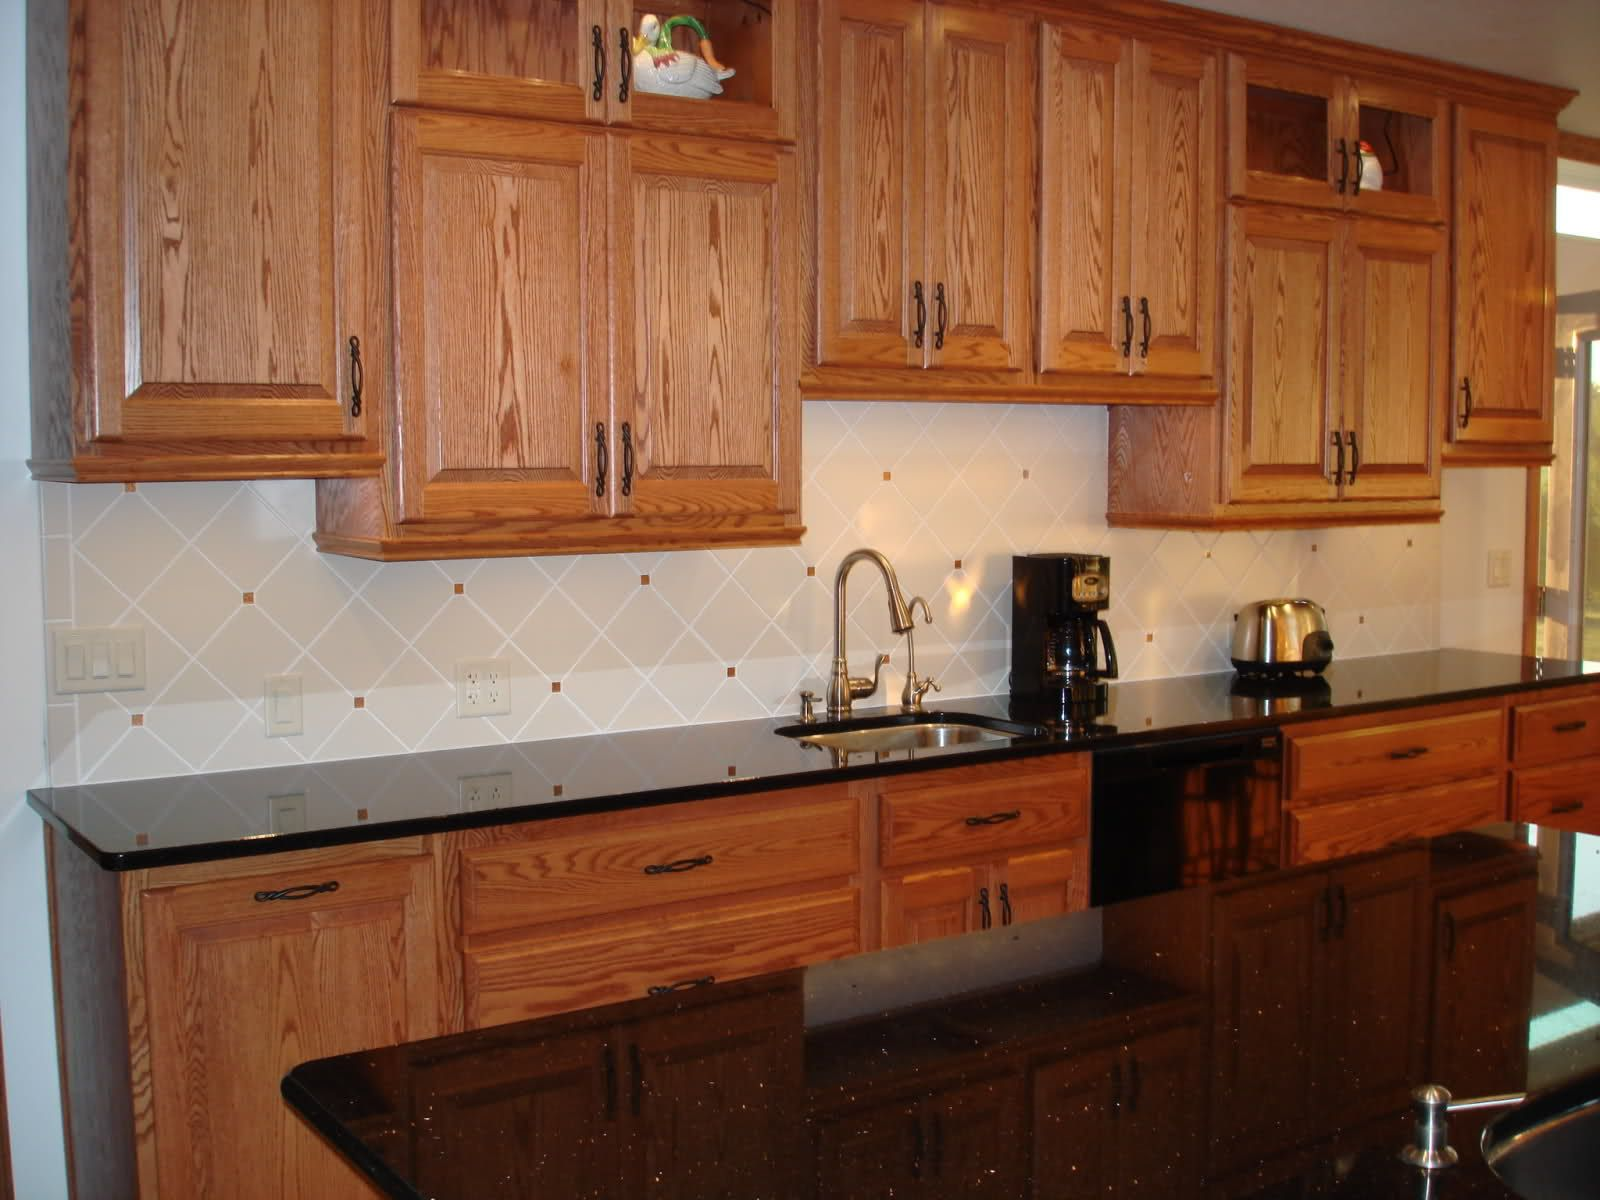 Backsplash pictures with oak cabinets and uba tuba granite Backsplash pictures